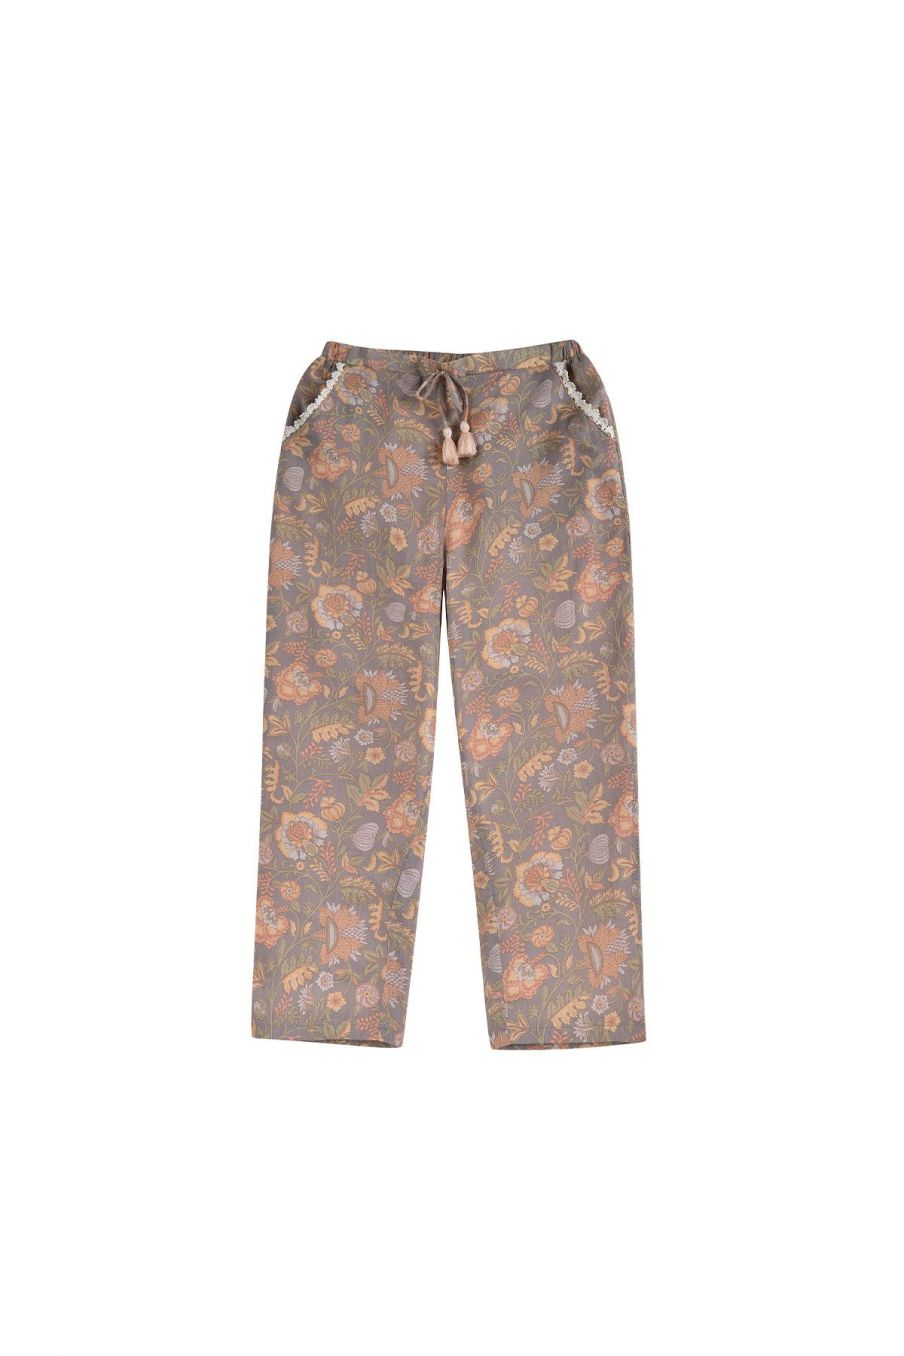 boheme chic vintage pantalon fille tzolani grey california flowers